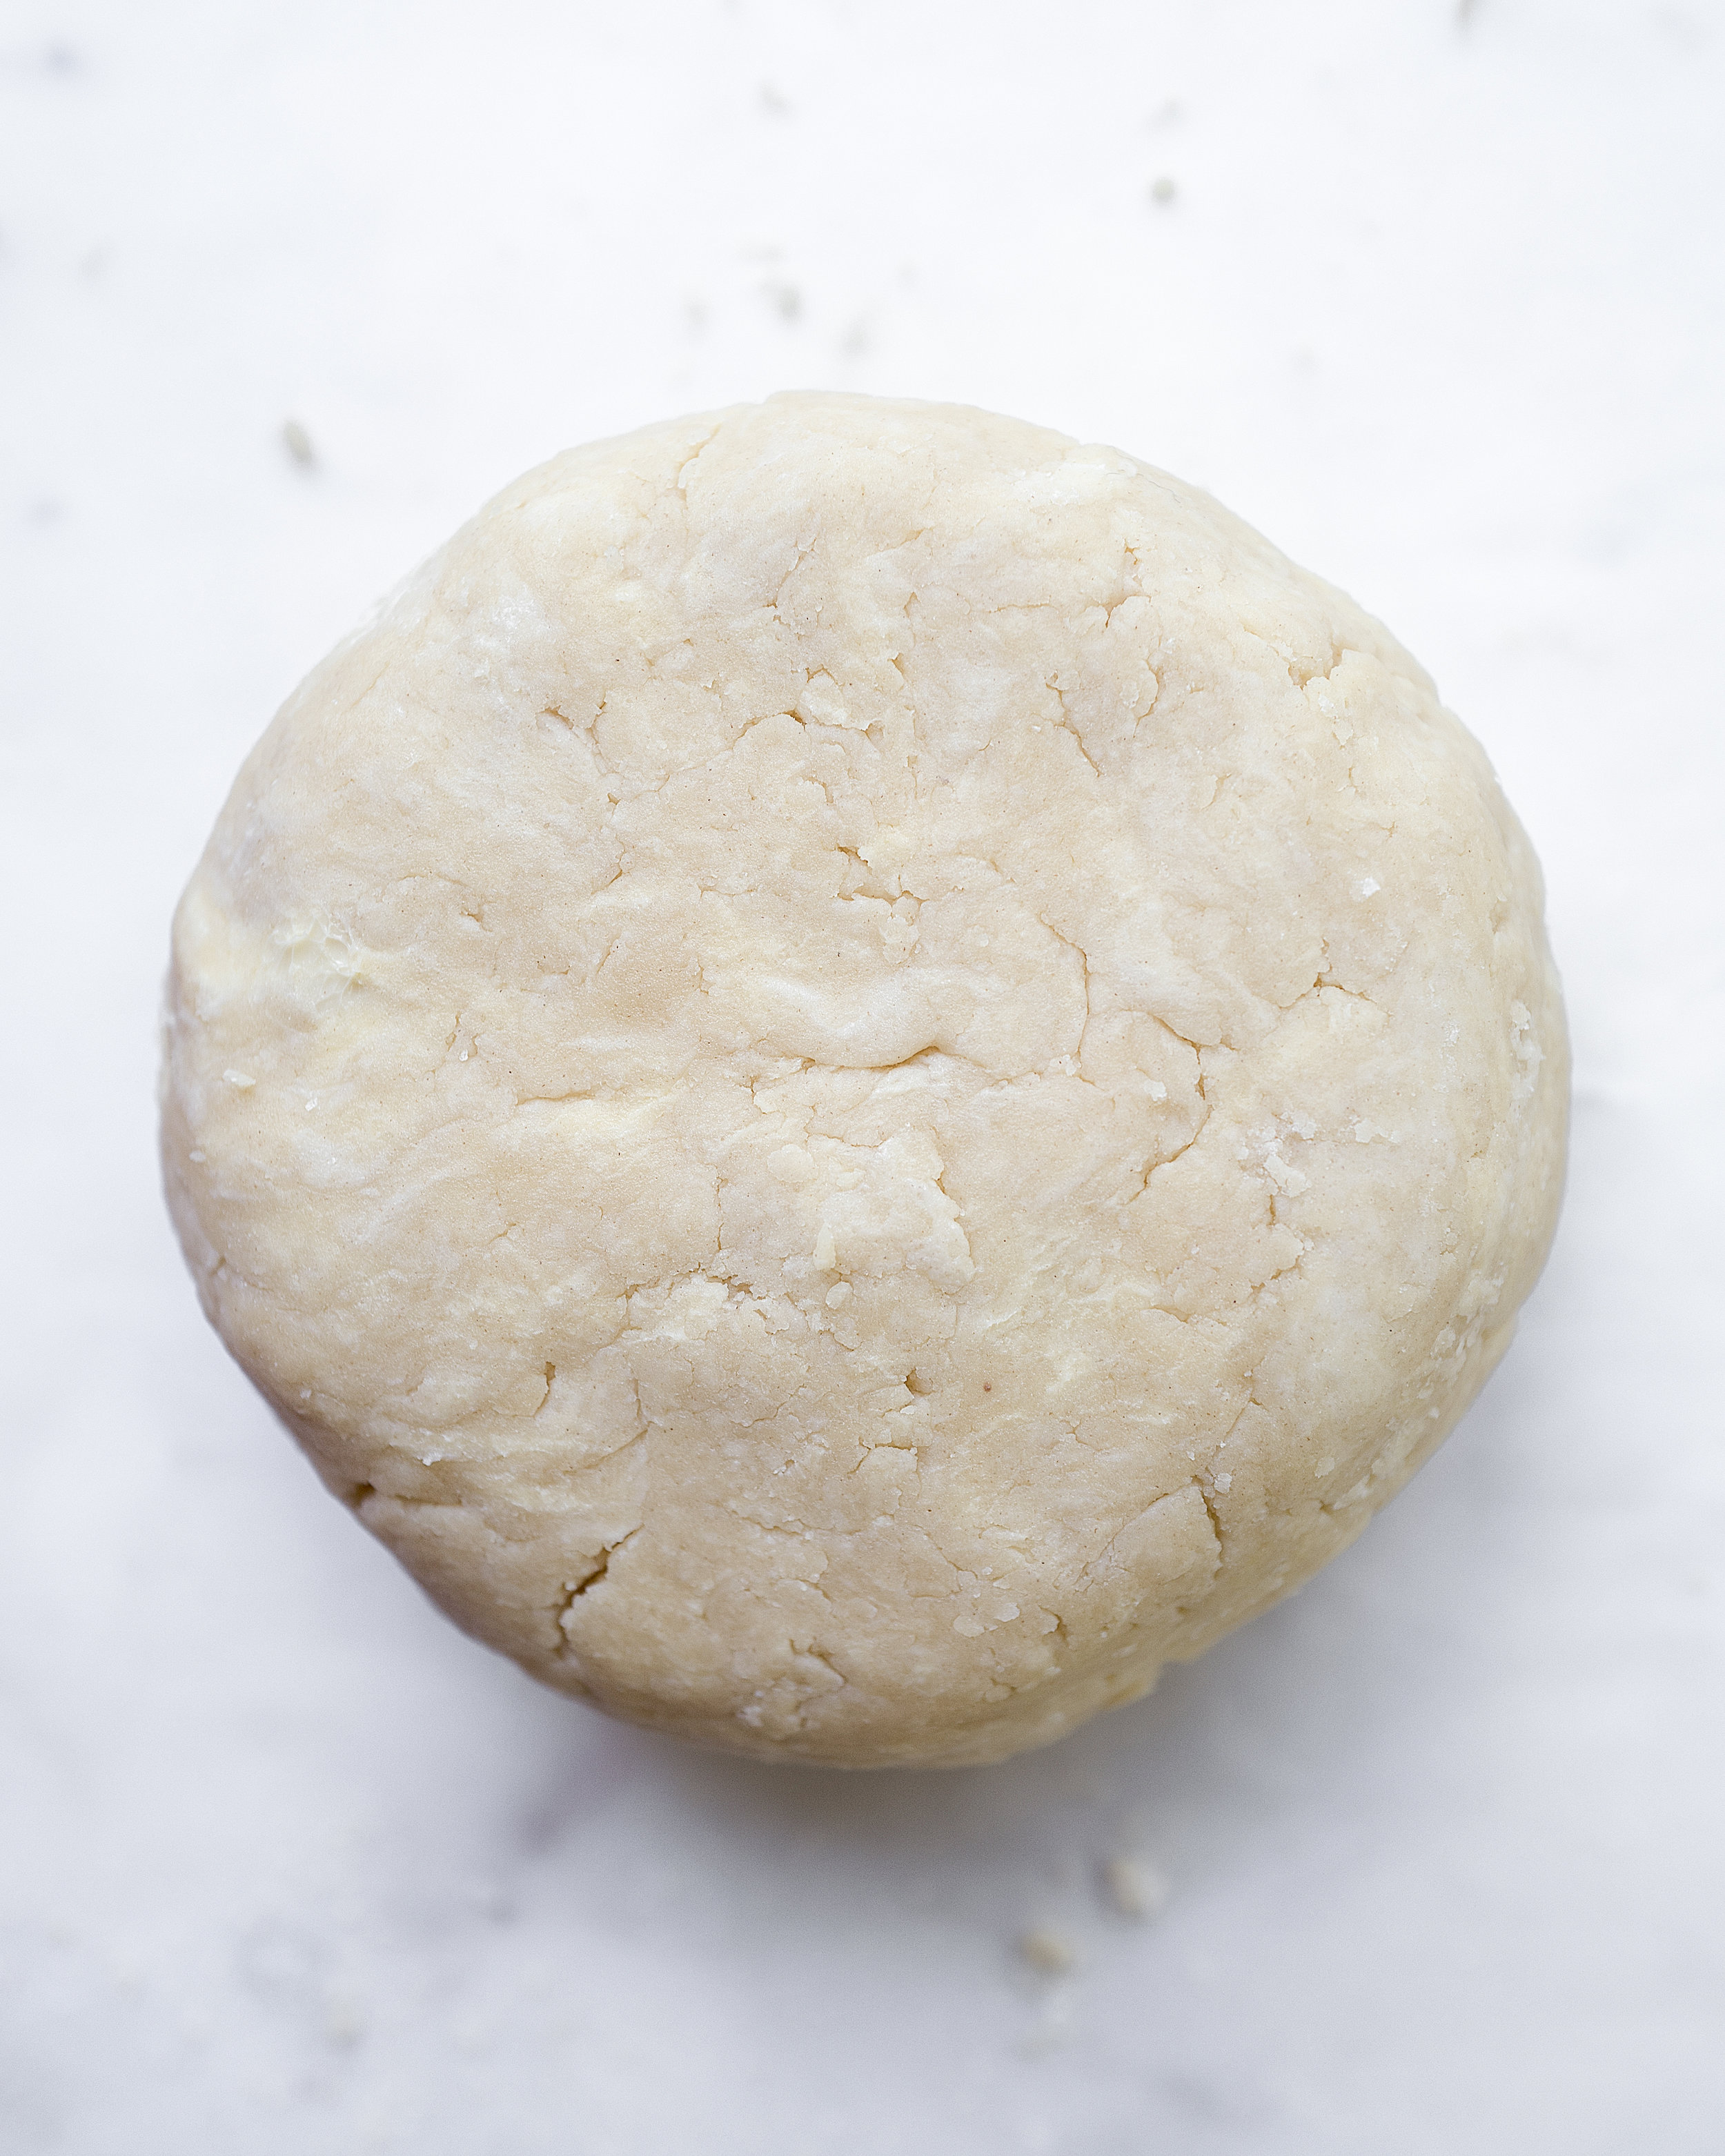 6. Fully hydrated dough, halved and formed into a disk